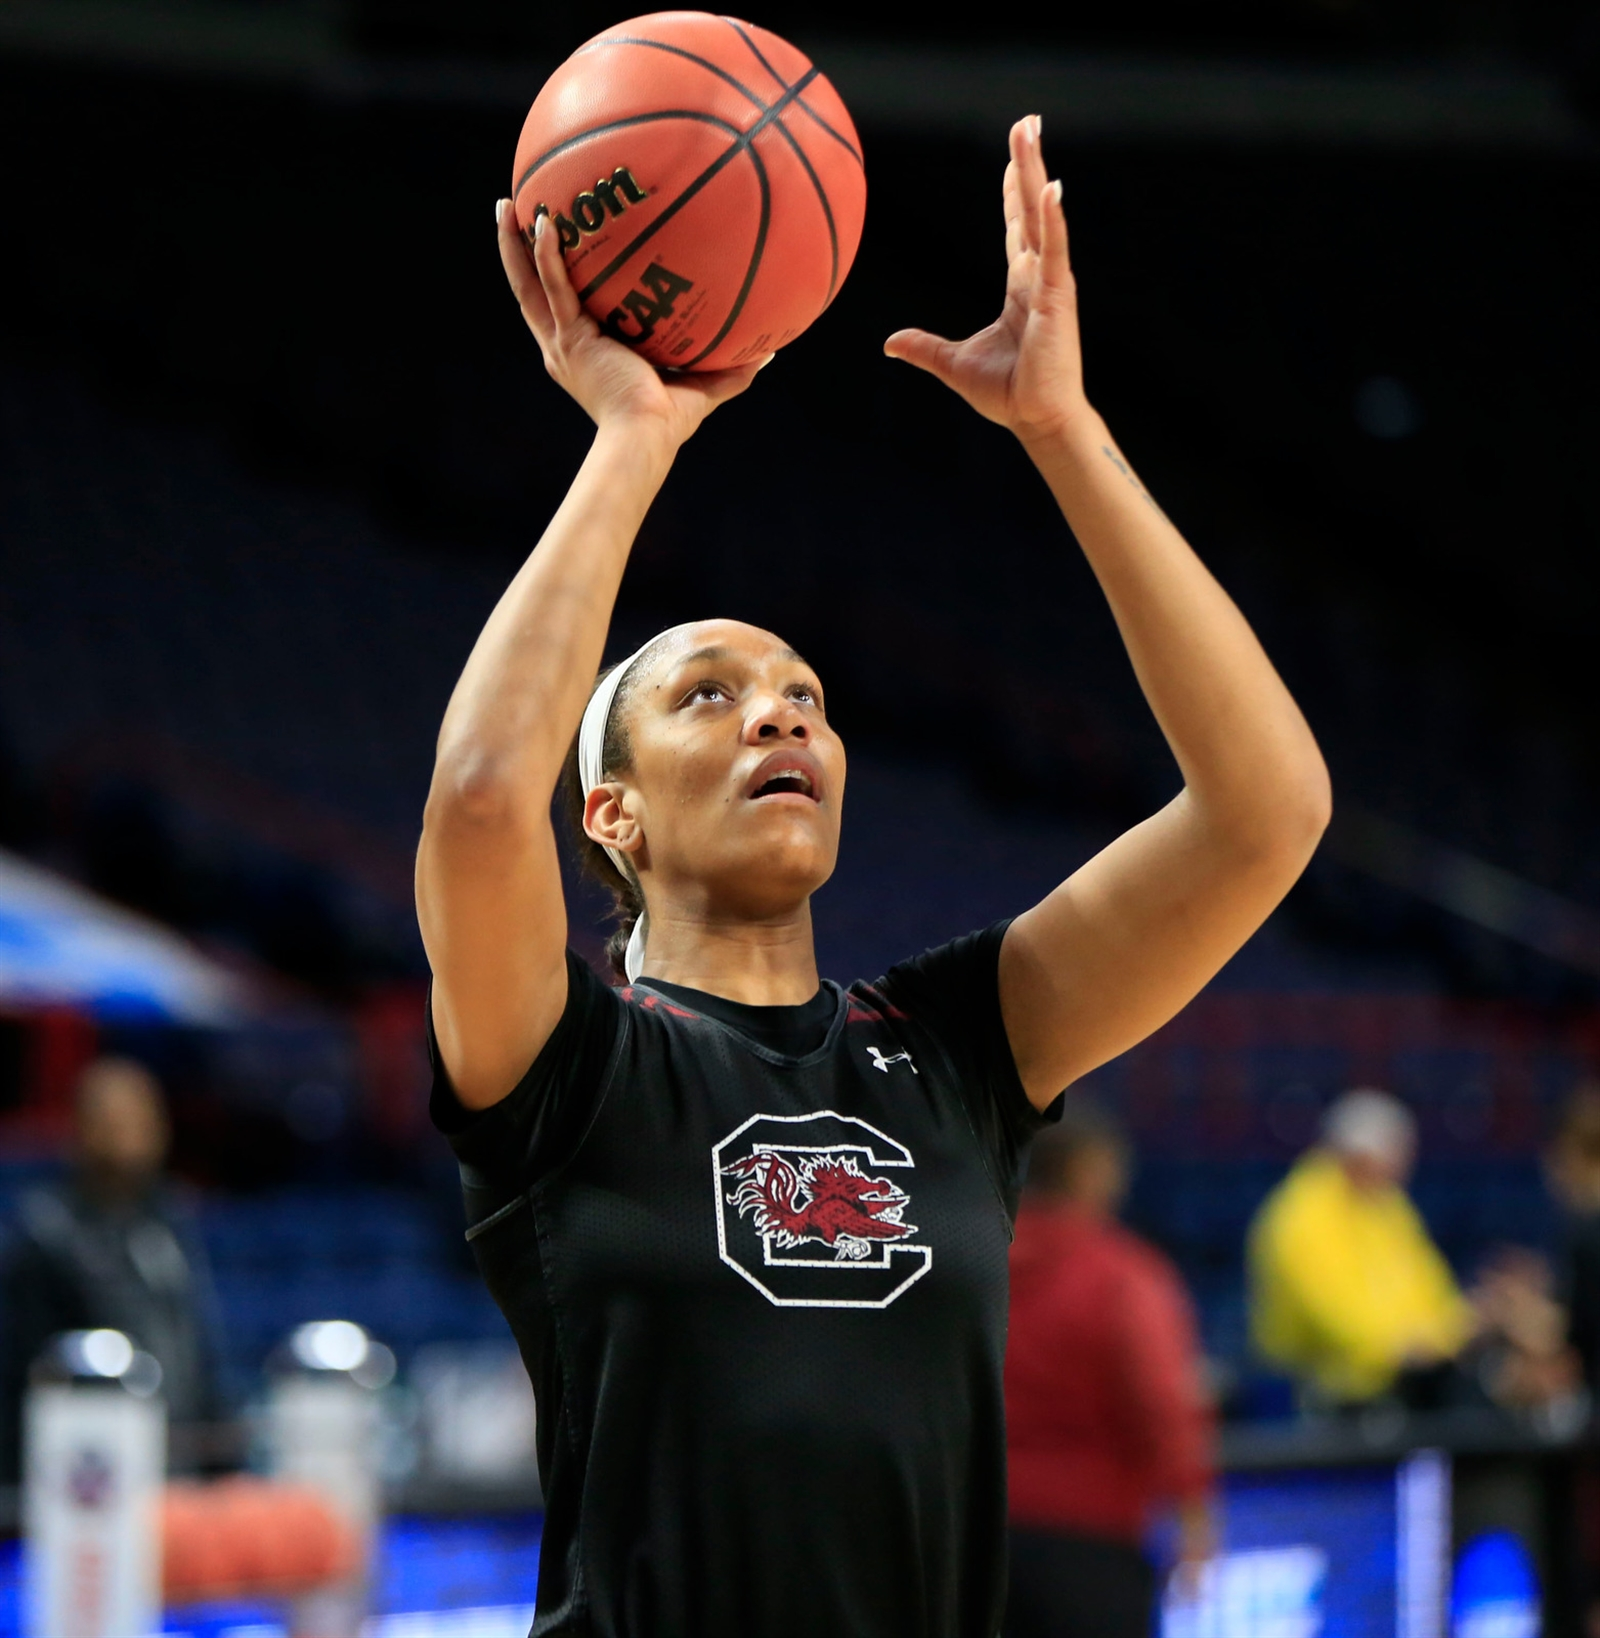 South Carolina forward A'ja Wilson shoots before a regional semifinal game against the University at Buffalo in the NCAA women's college basketball tournament at the Times Union Center on Friday March 23, 2018.